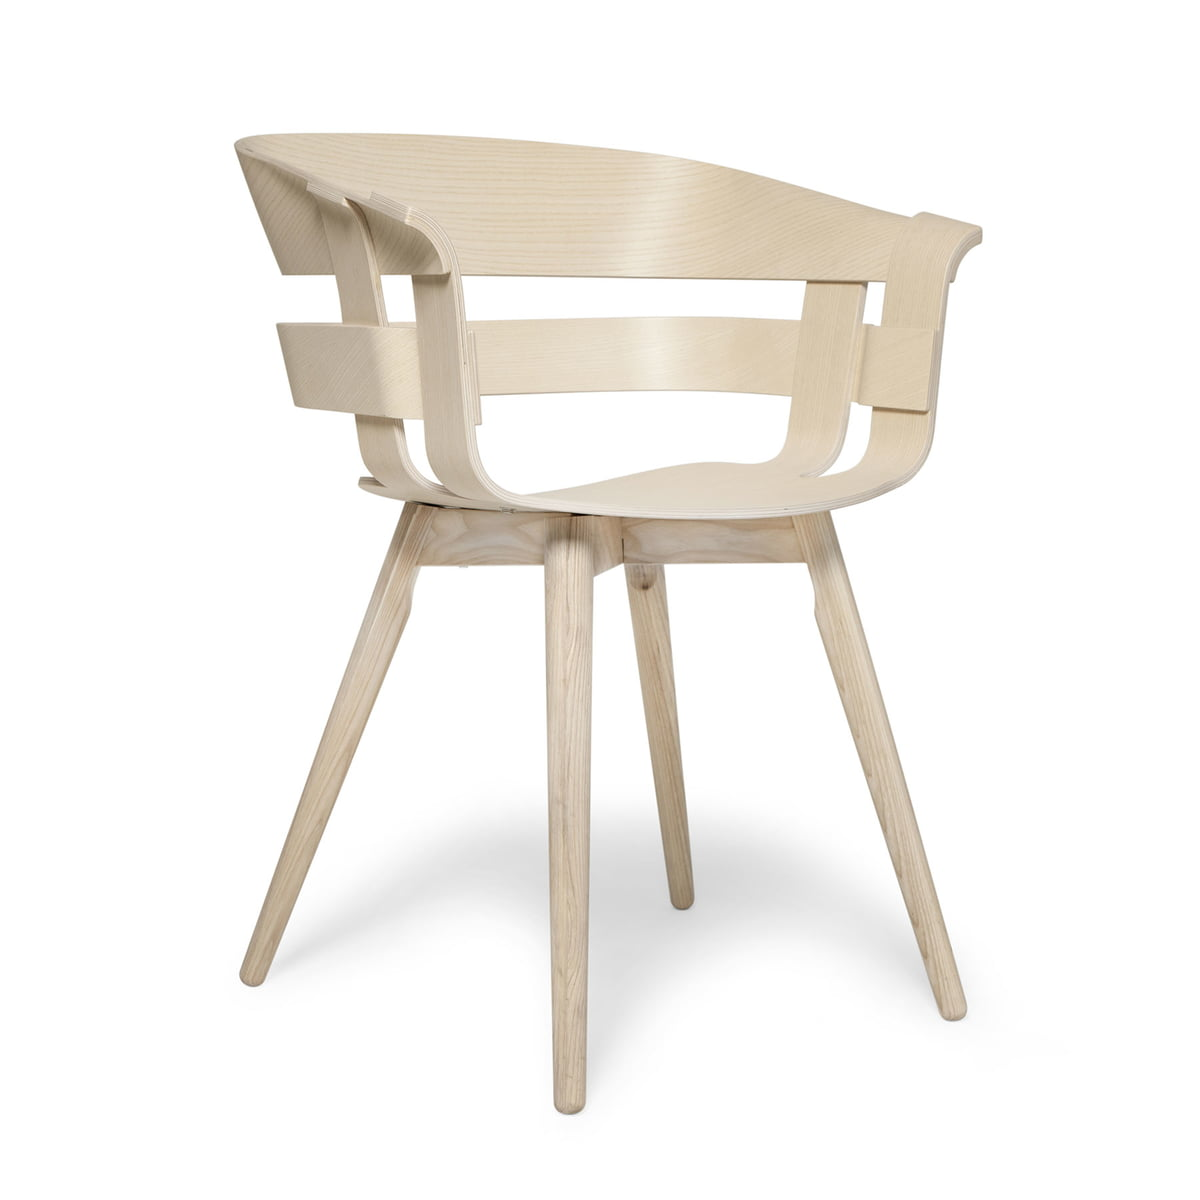 Wick chair by design house stockholm in the shop for Design chair shop